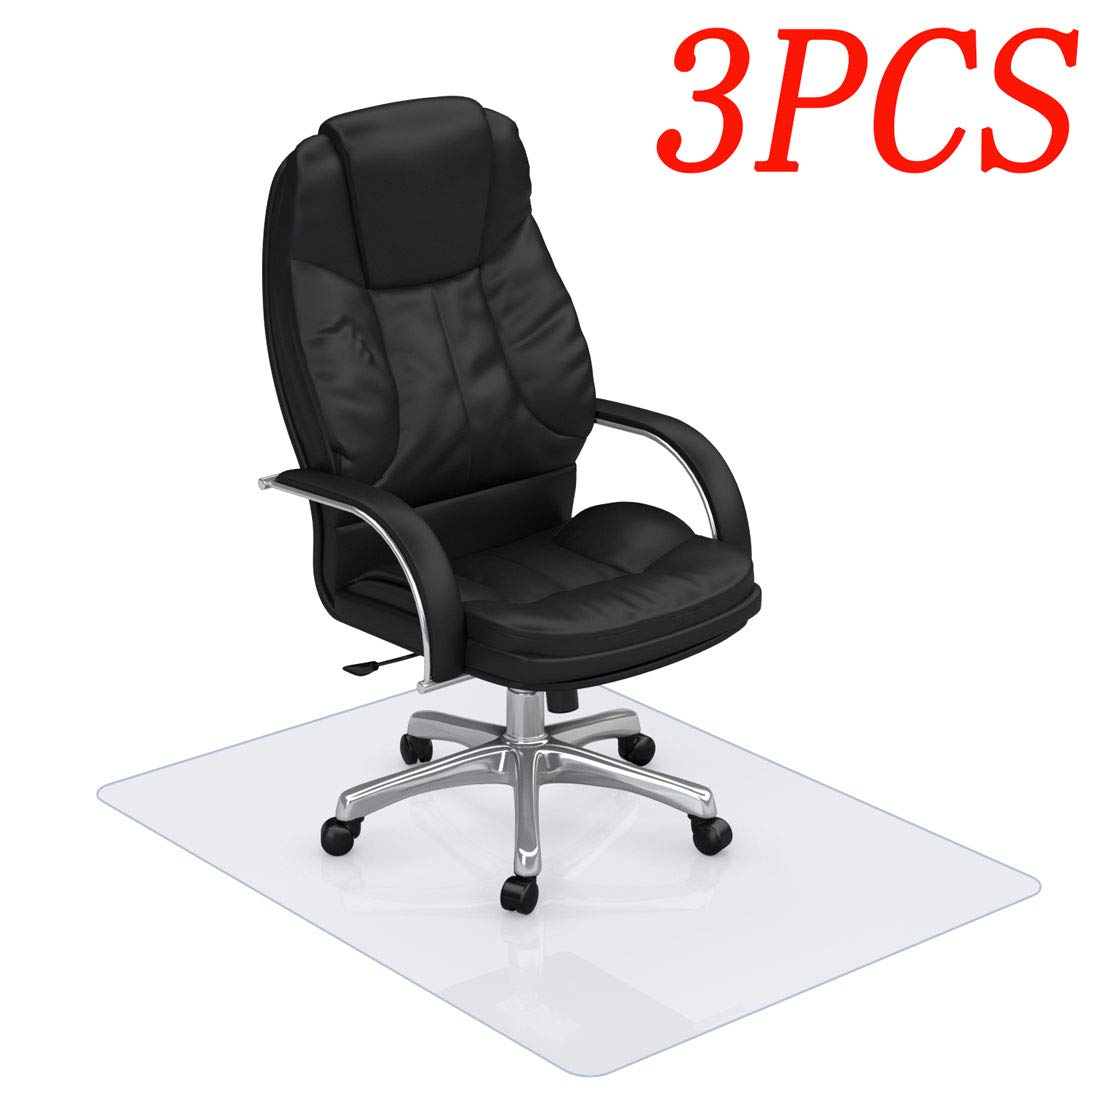 3Pcs Hardwood Chair Mat Shipped by Seller(7-15 Days), Promise to Be The Same As FBA Goods (One Piece), Do Not Accept Returns Refunds. If Have Any Questions, Contact Boyou Office Direct